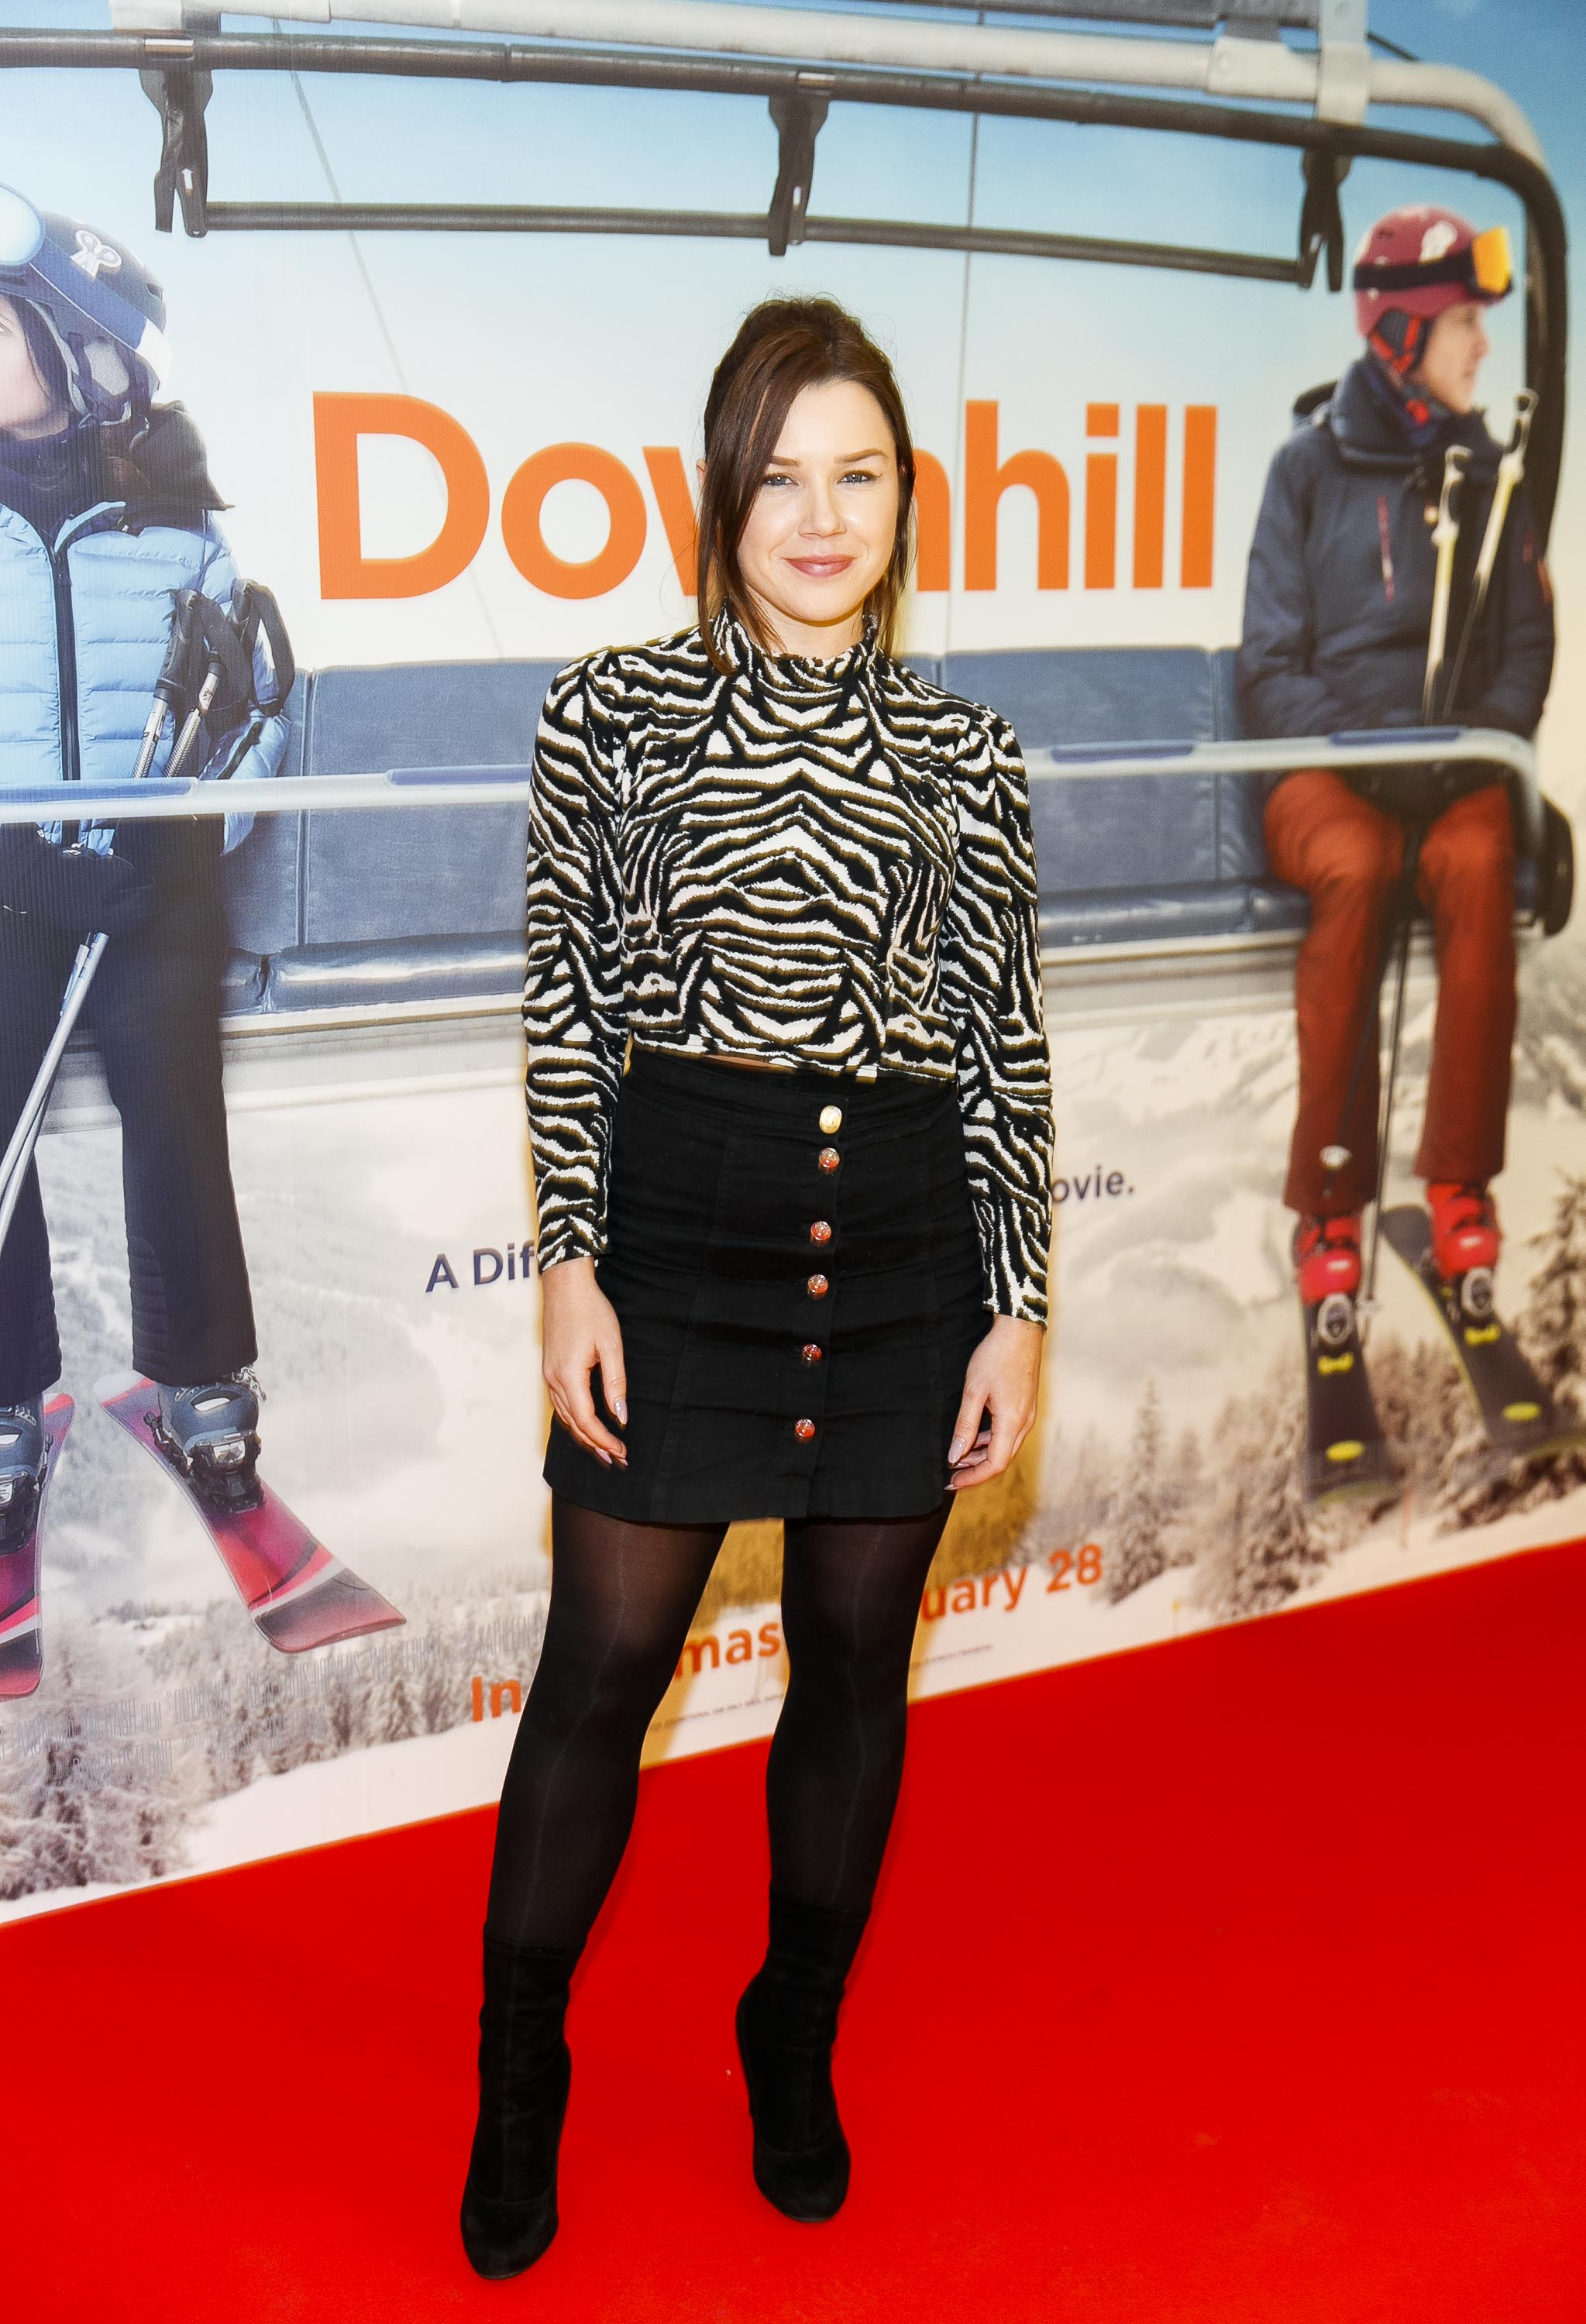 Saoirse Long pictured at a special preview screening of Downhill at the Light House Cinema, Dublin. Picture: Andres Poveda.